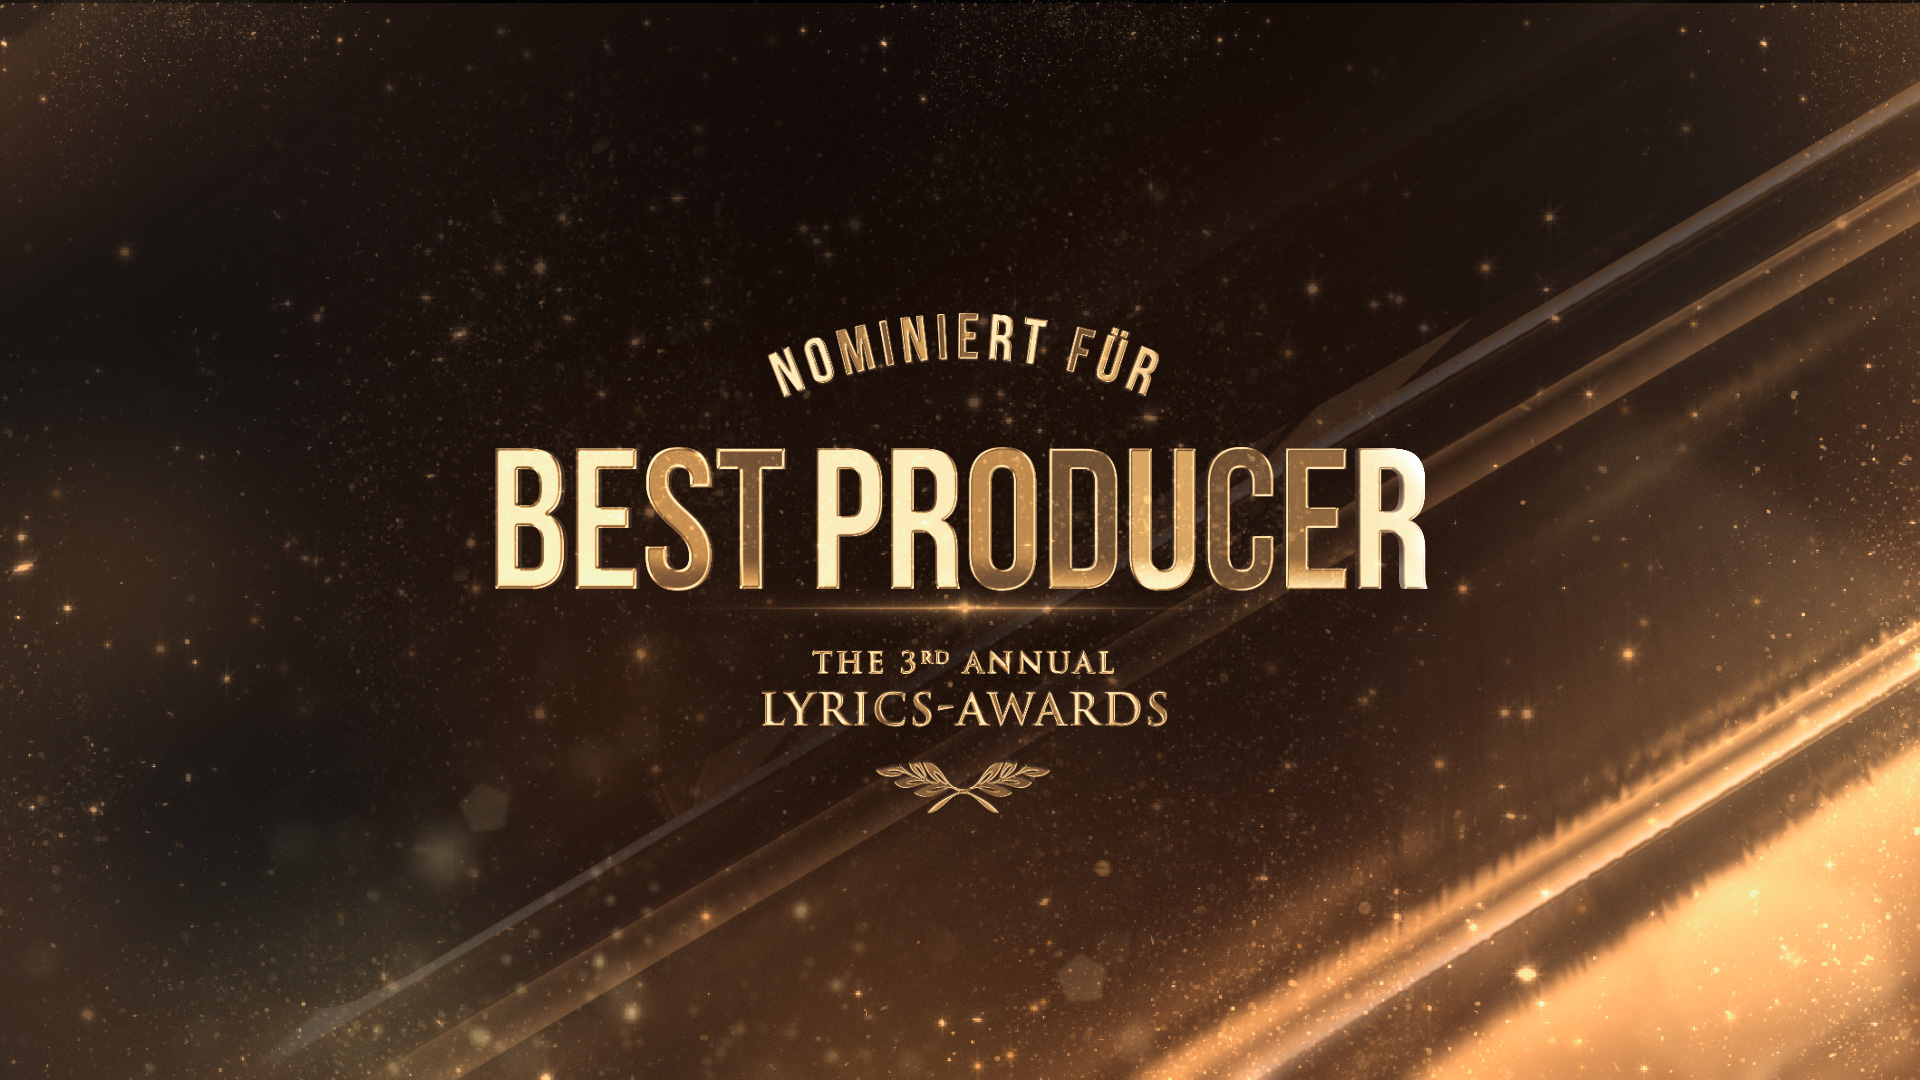 Best Producer | LYRICS-Awards 2018